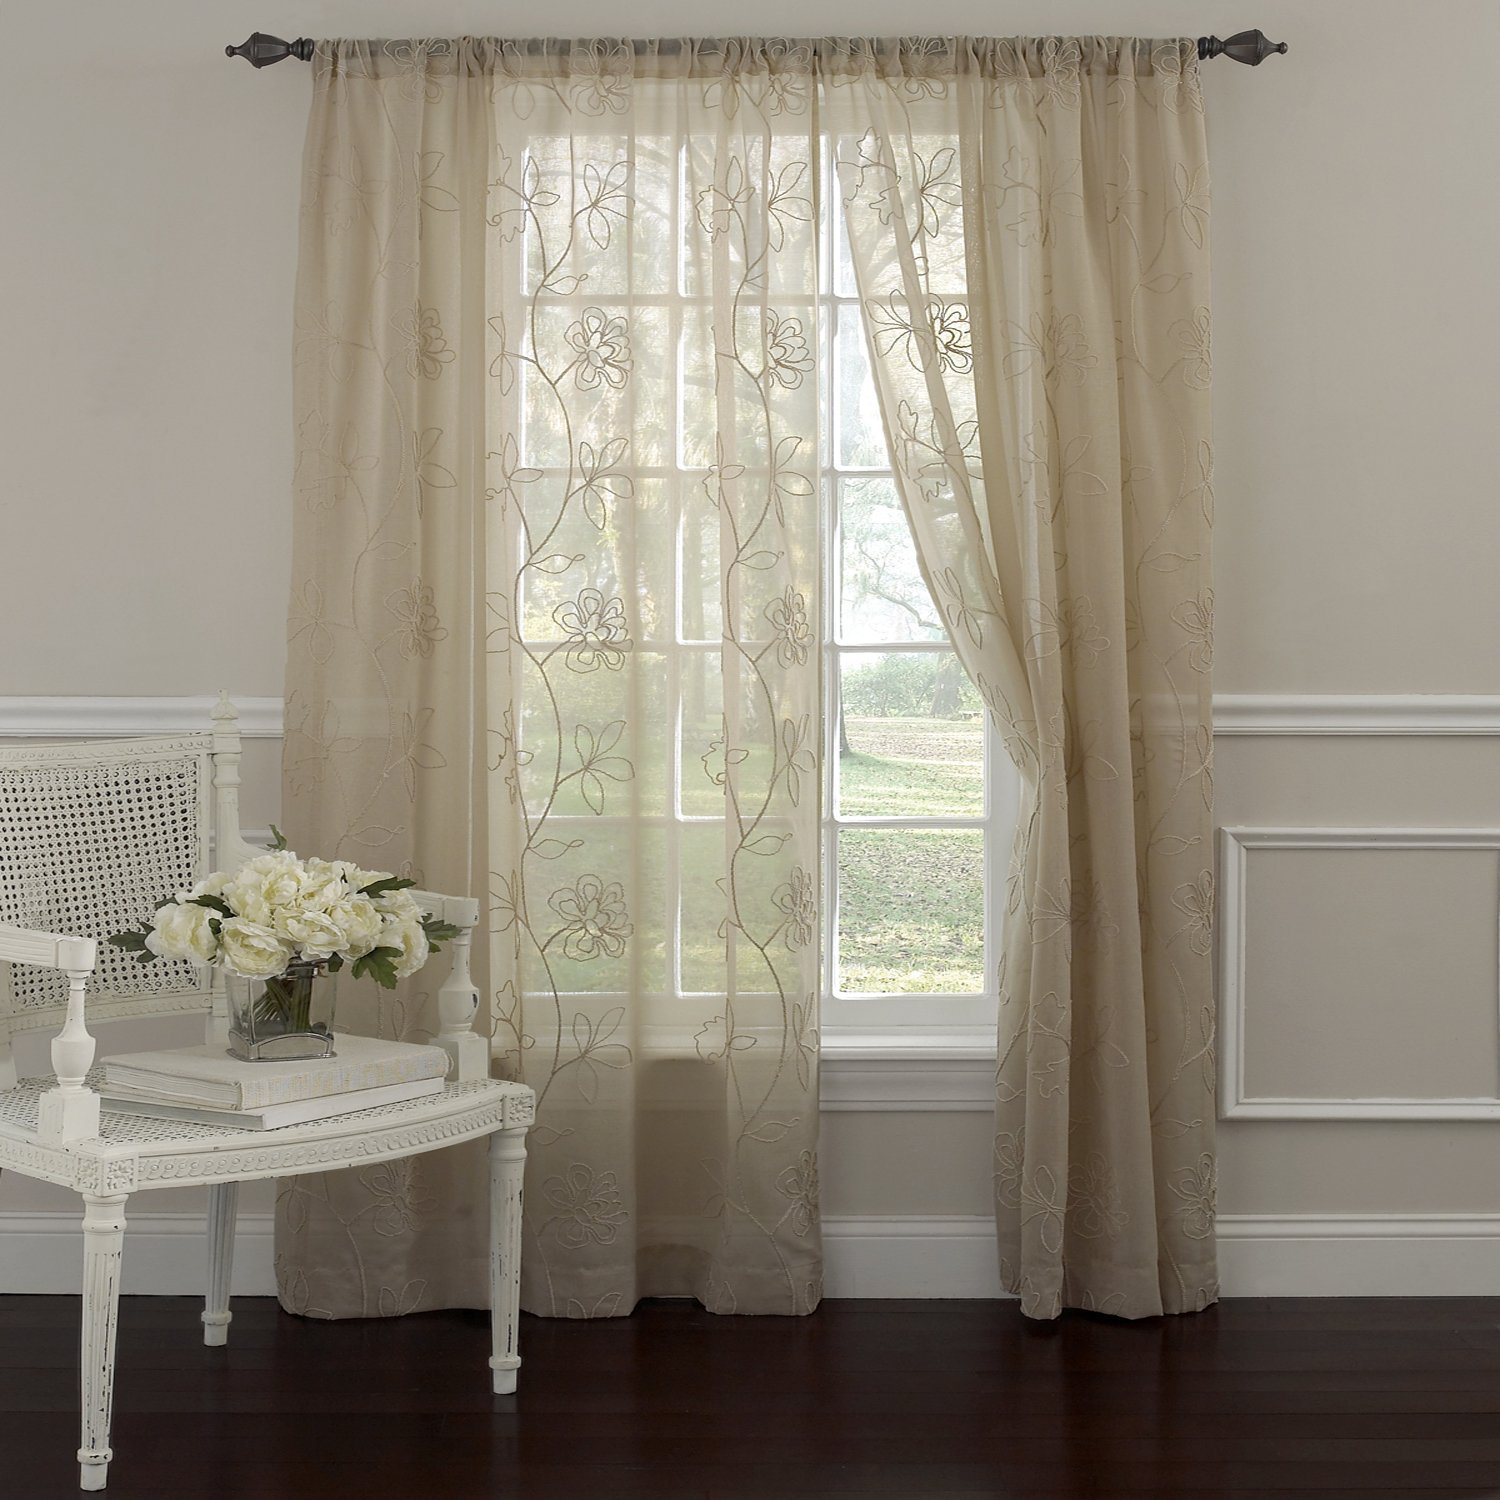 furnishings short curtains lighting white and eyelet range the blinds